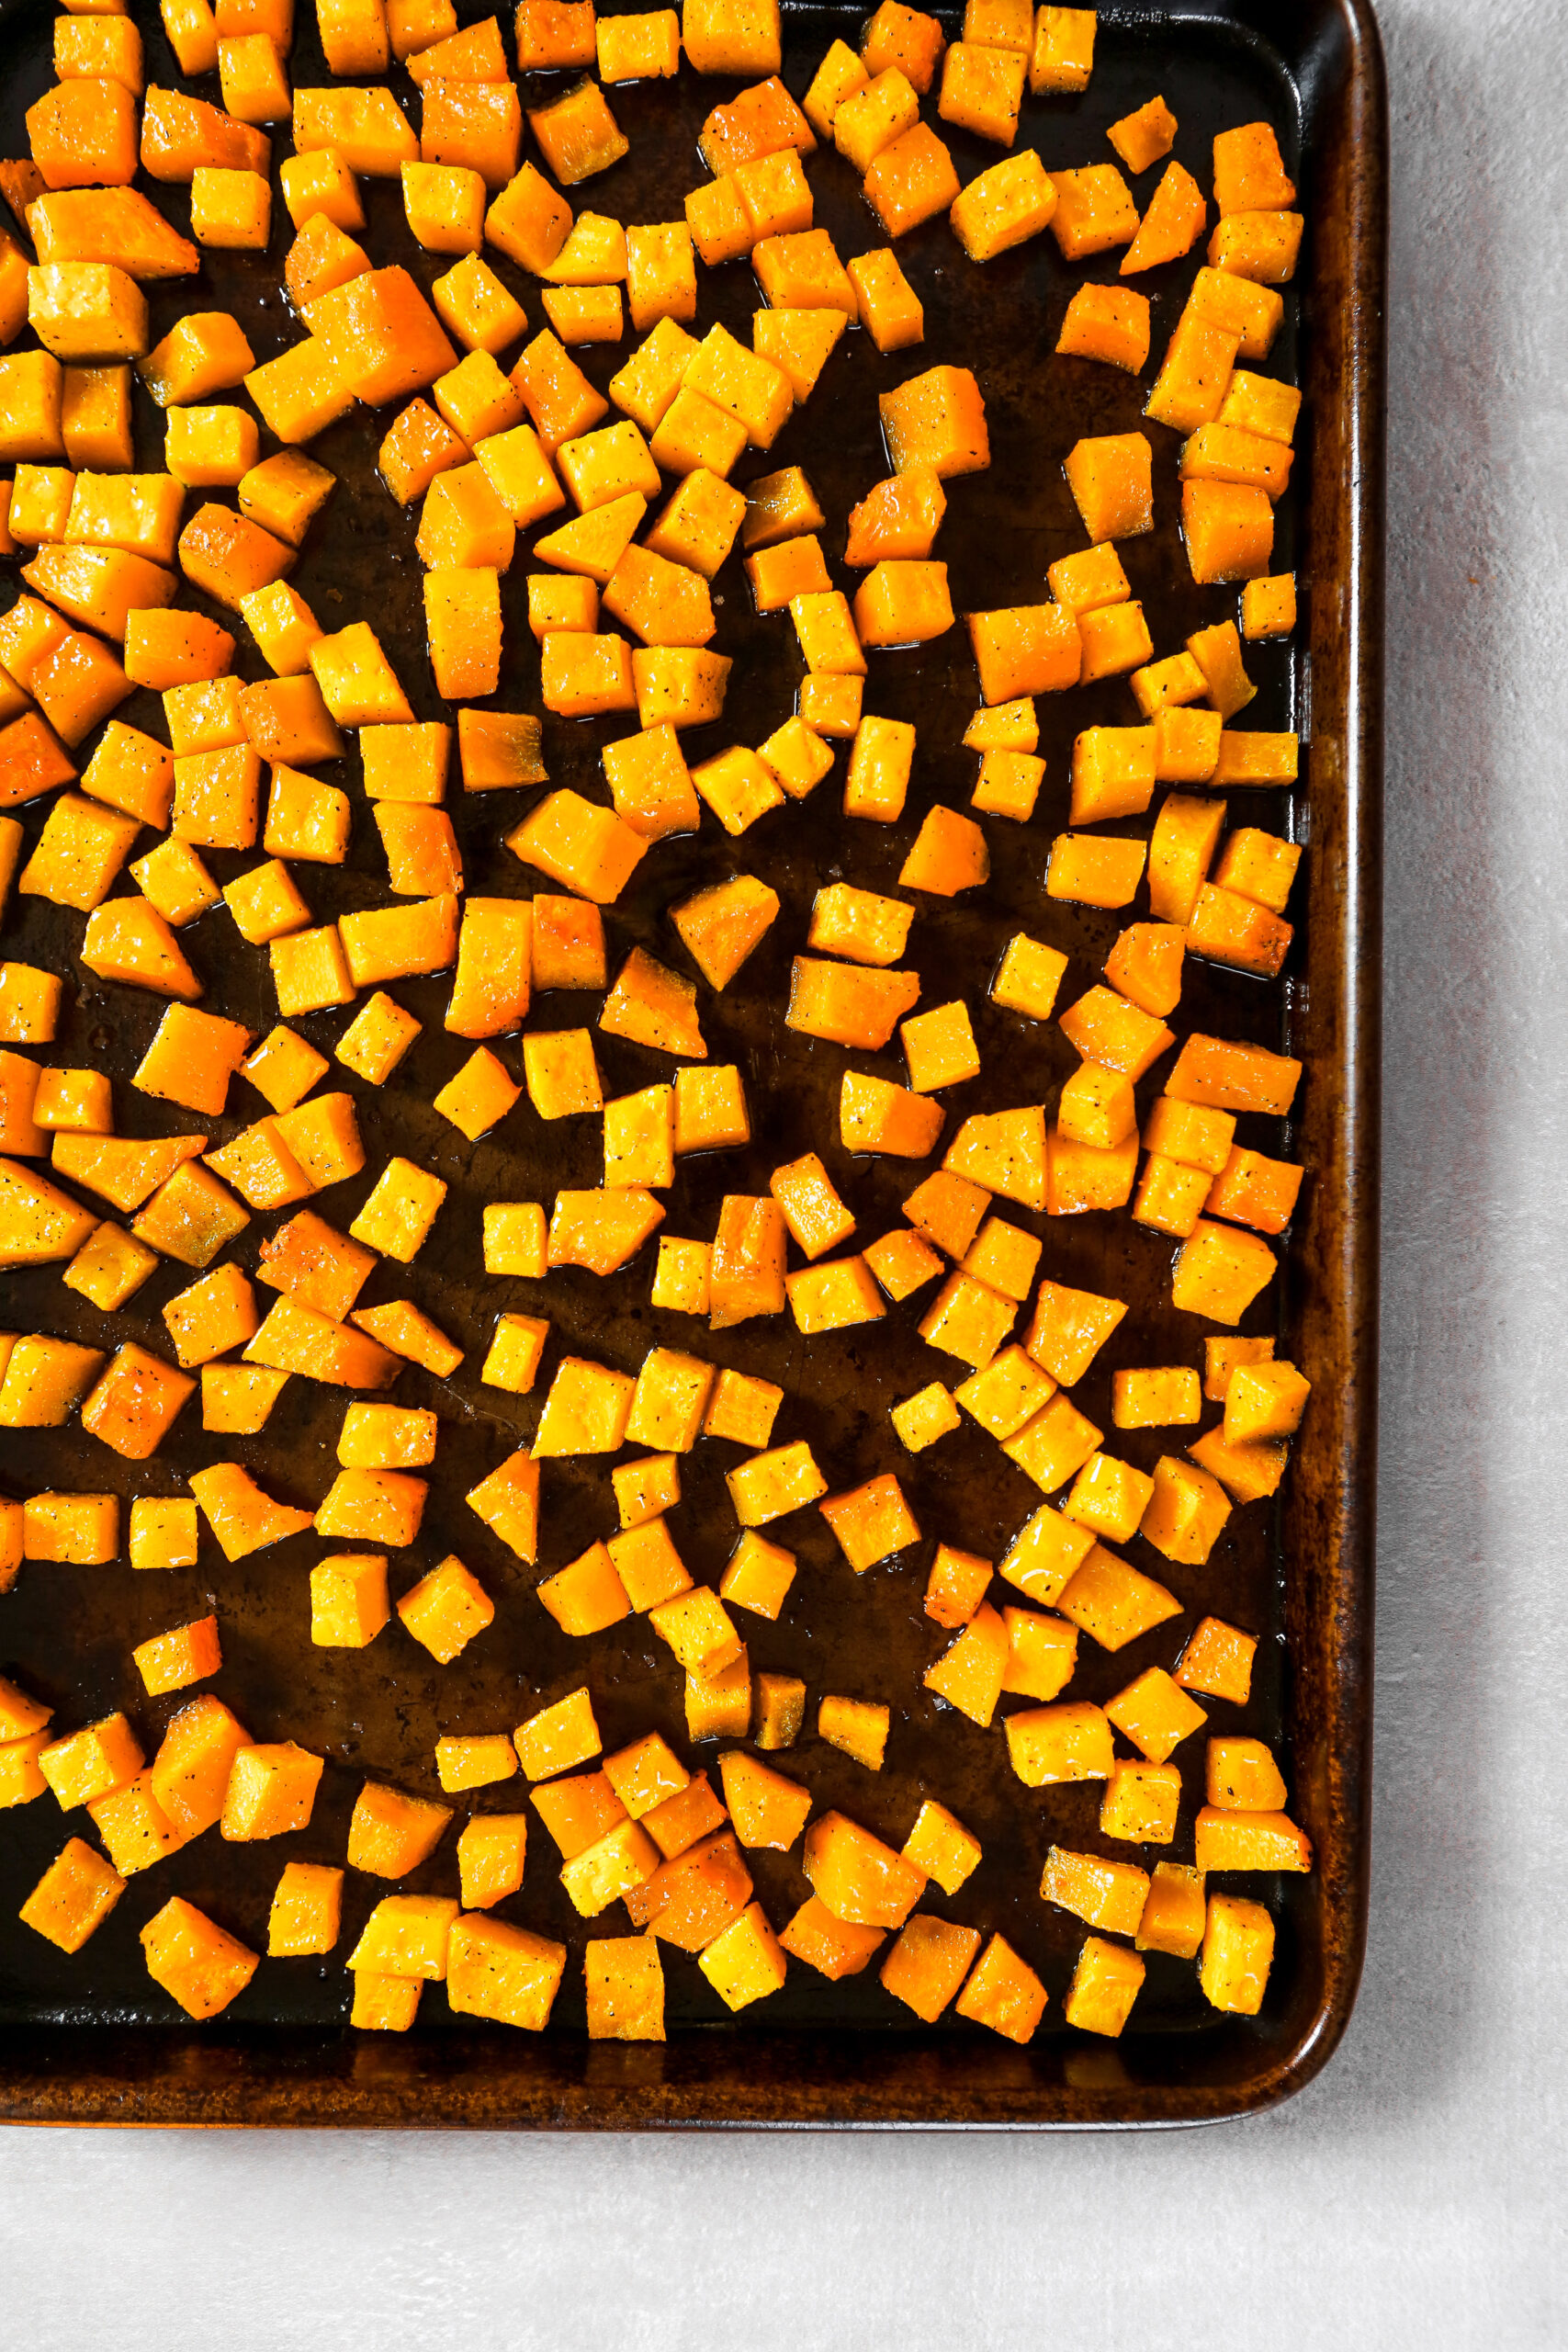 baking sheet with cubes of roasted squash